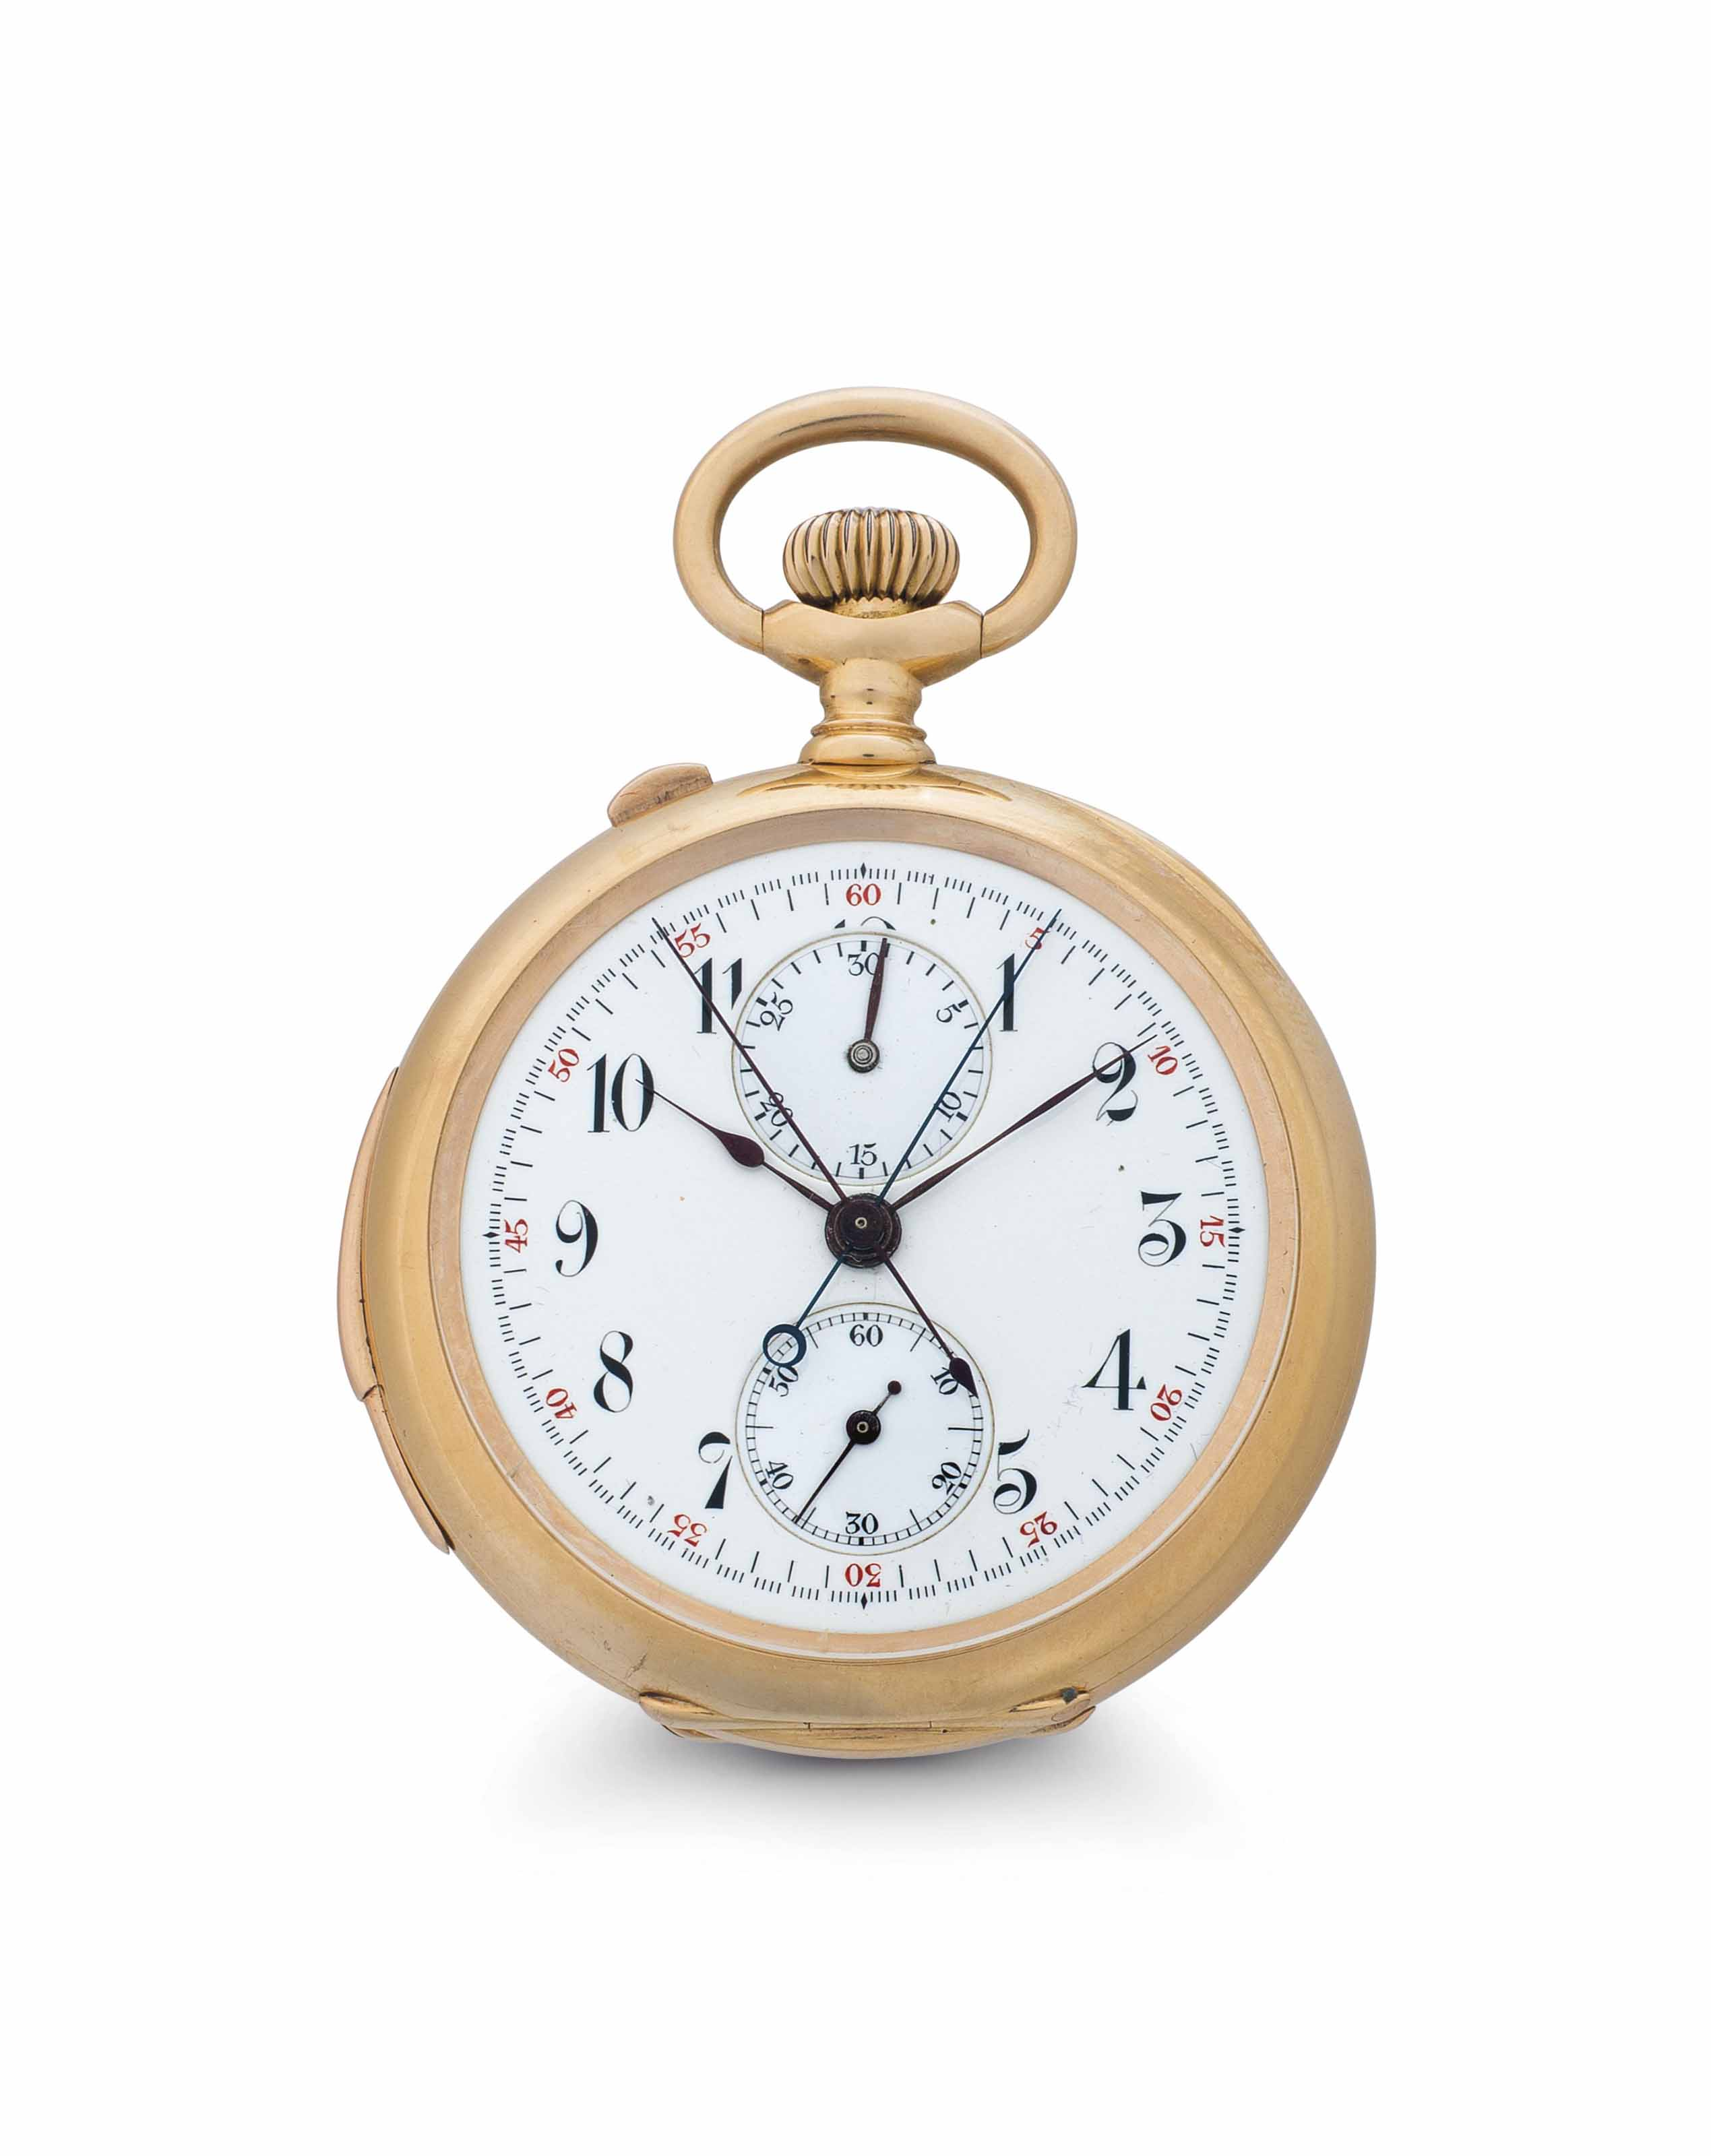 Bartens & Rice. A Fine 18k Pink Gold Minute Repeating Openface Split-Seconds Chronograph Keyless Lever Pocket Watch